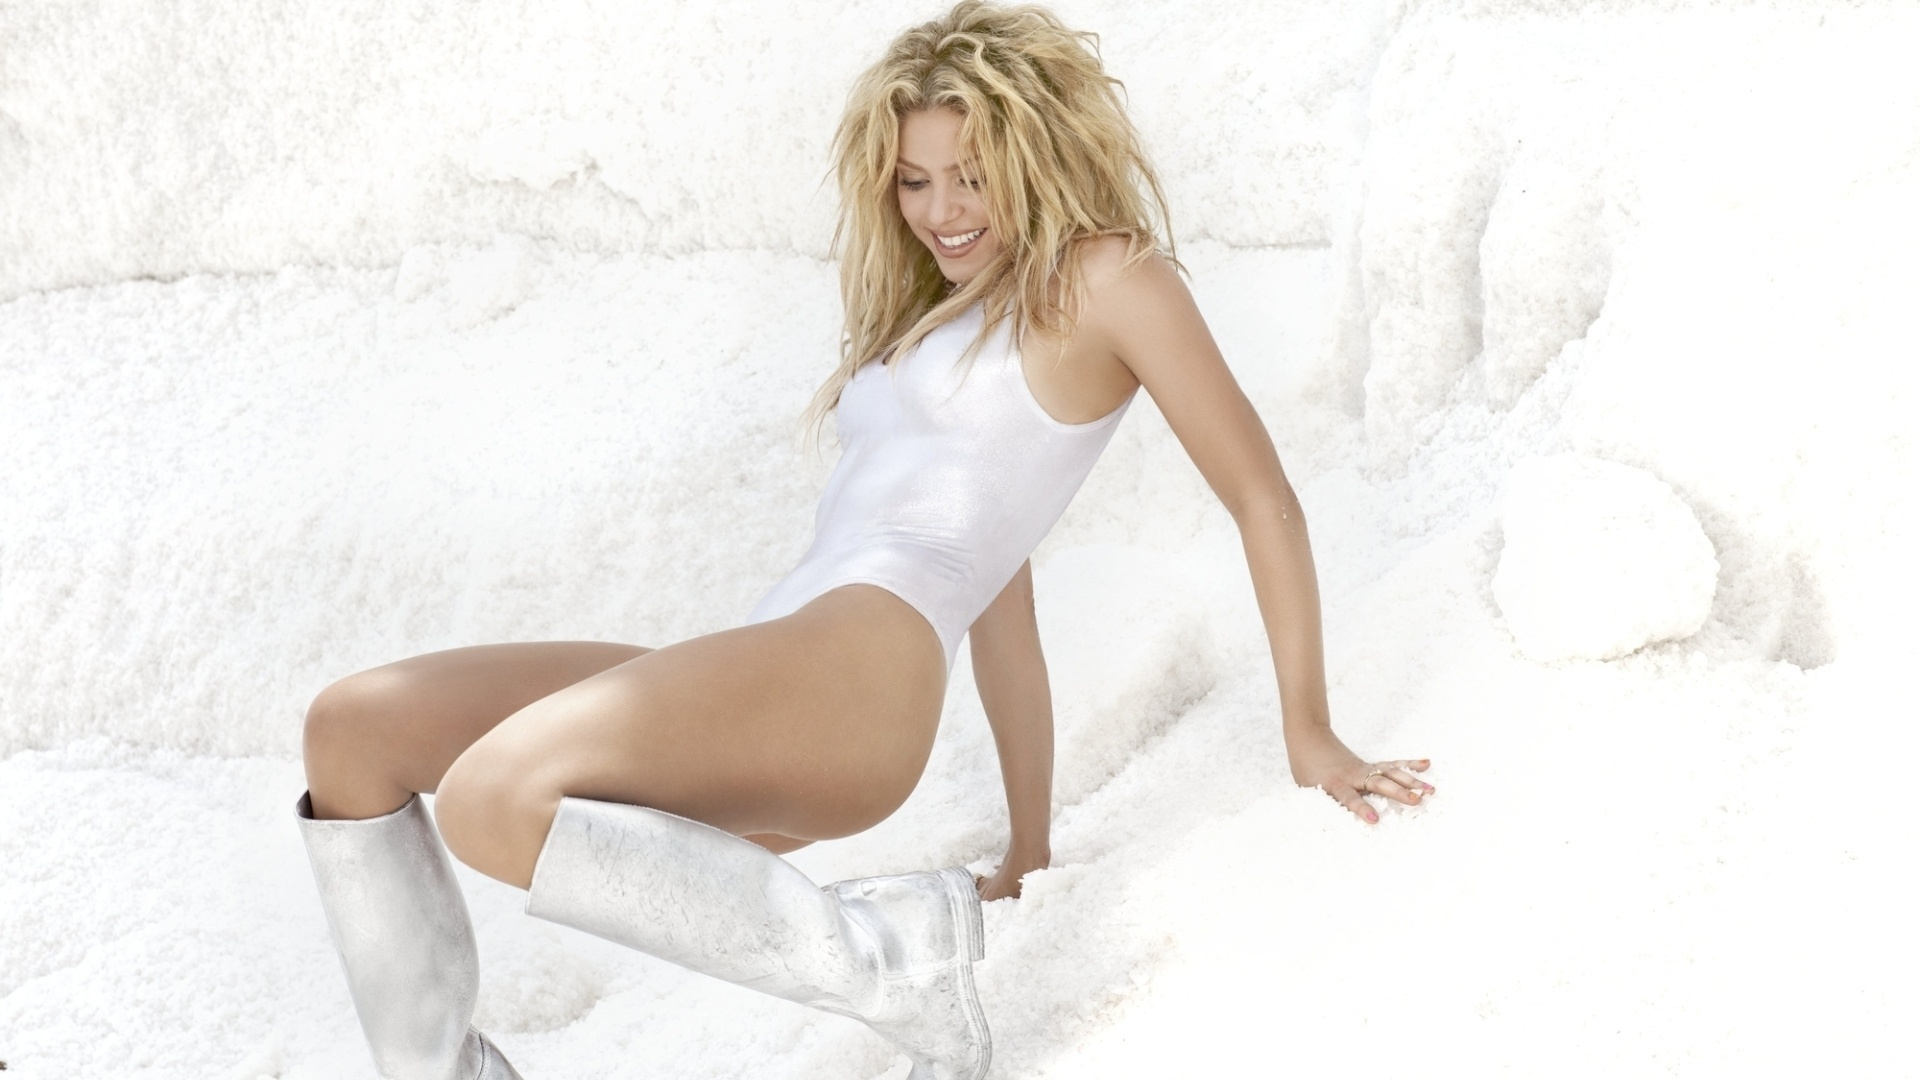 shakira wallpaper white